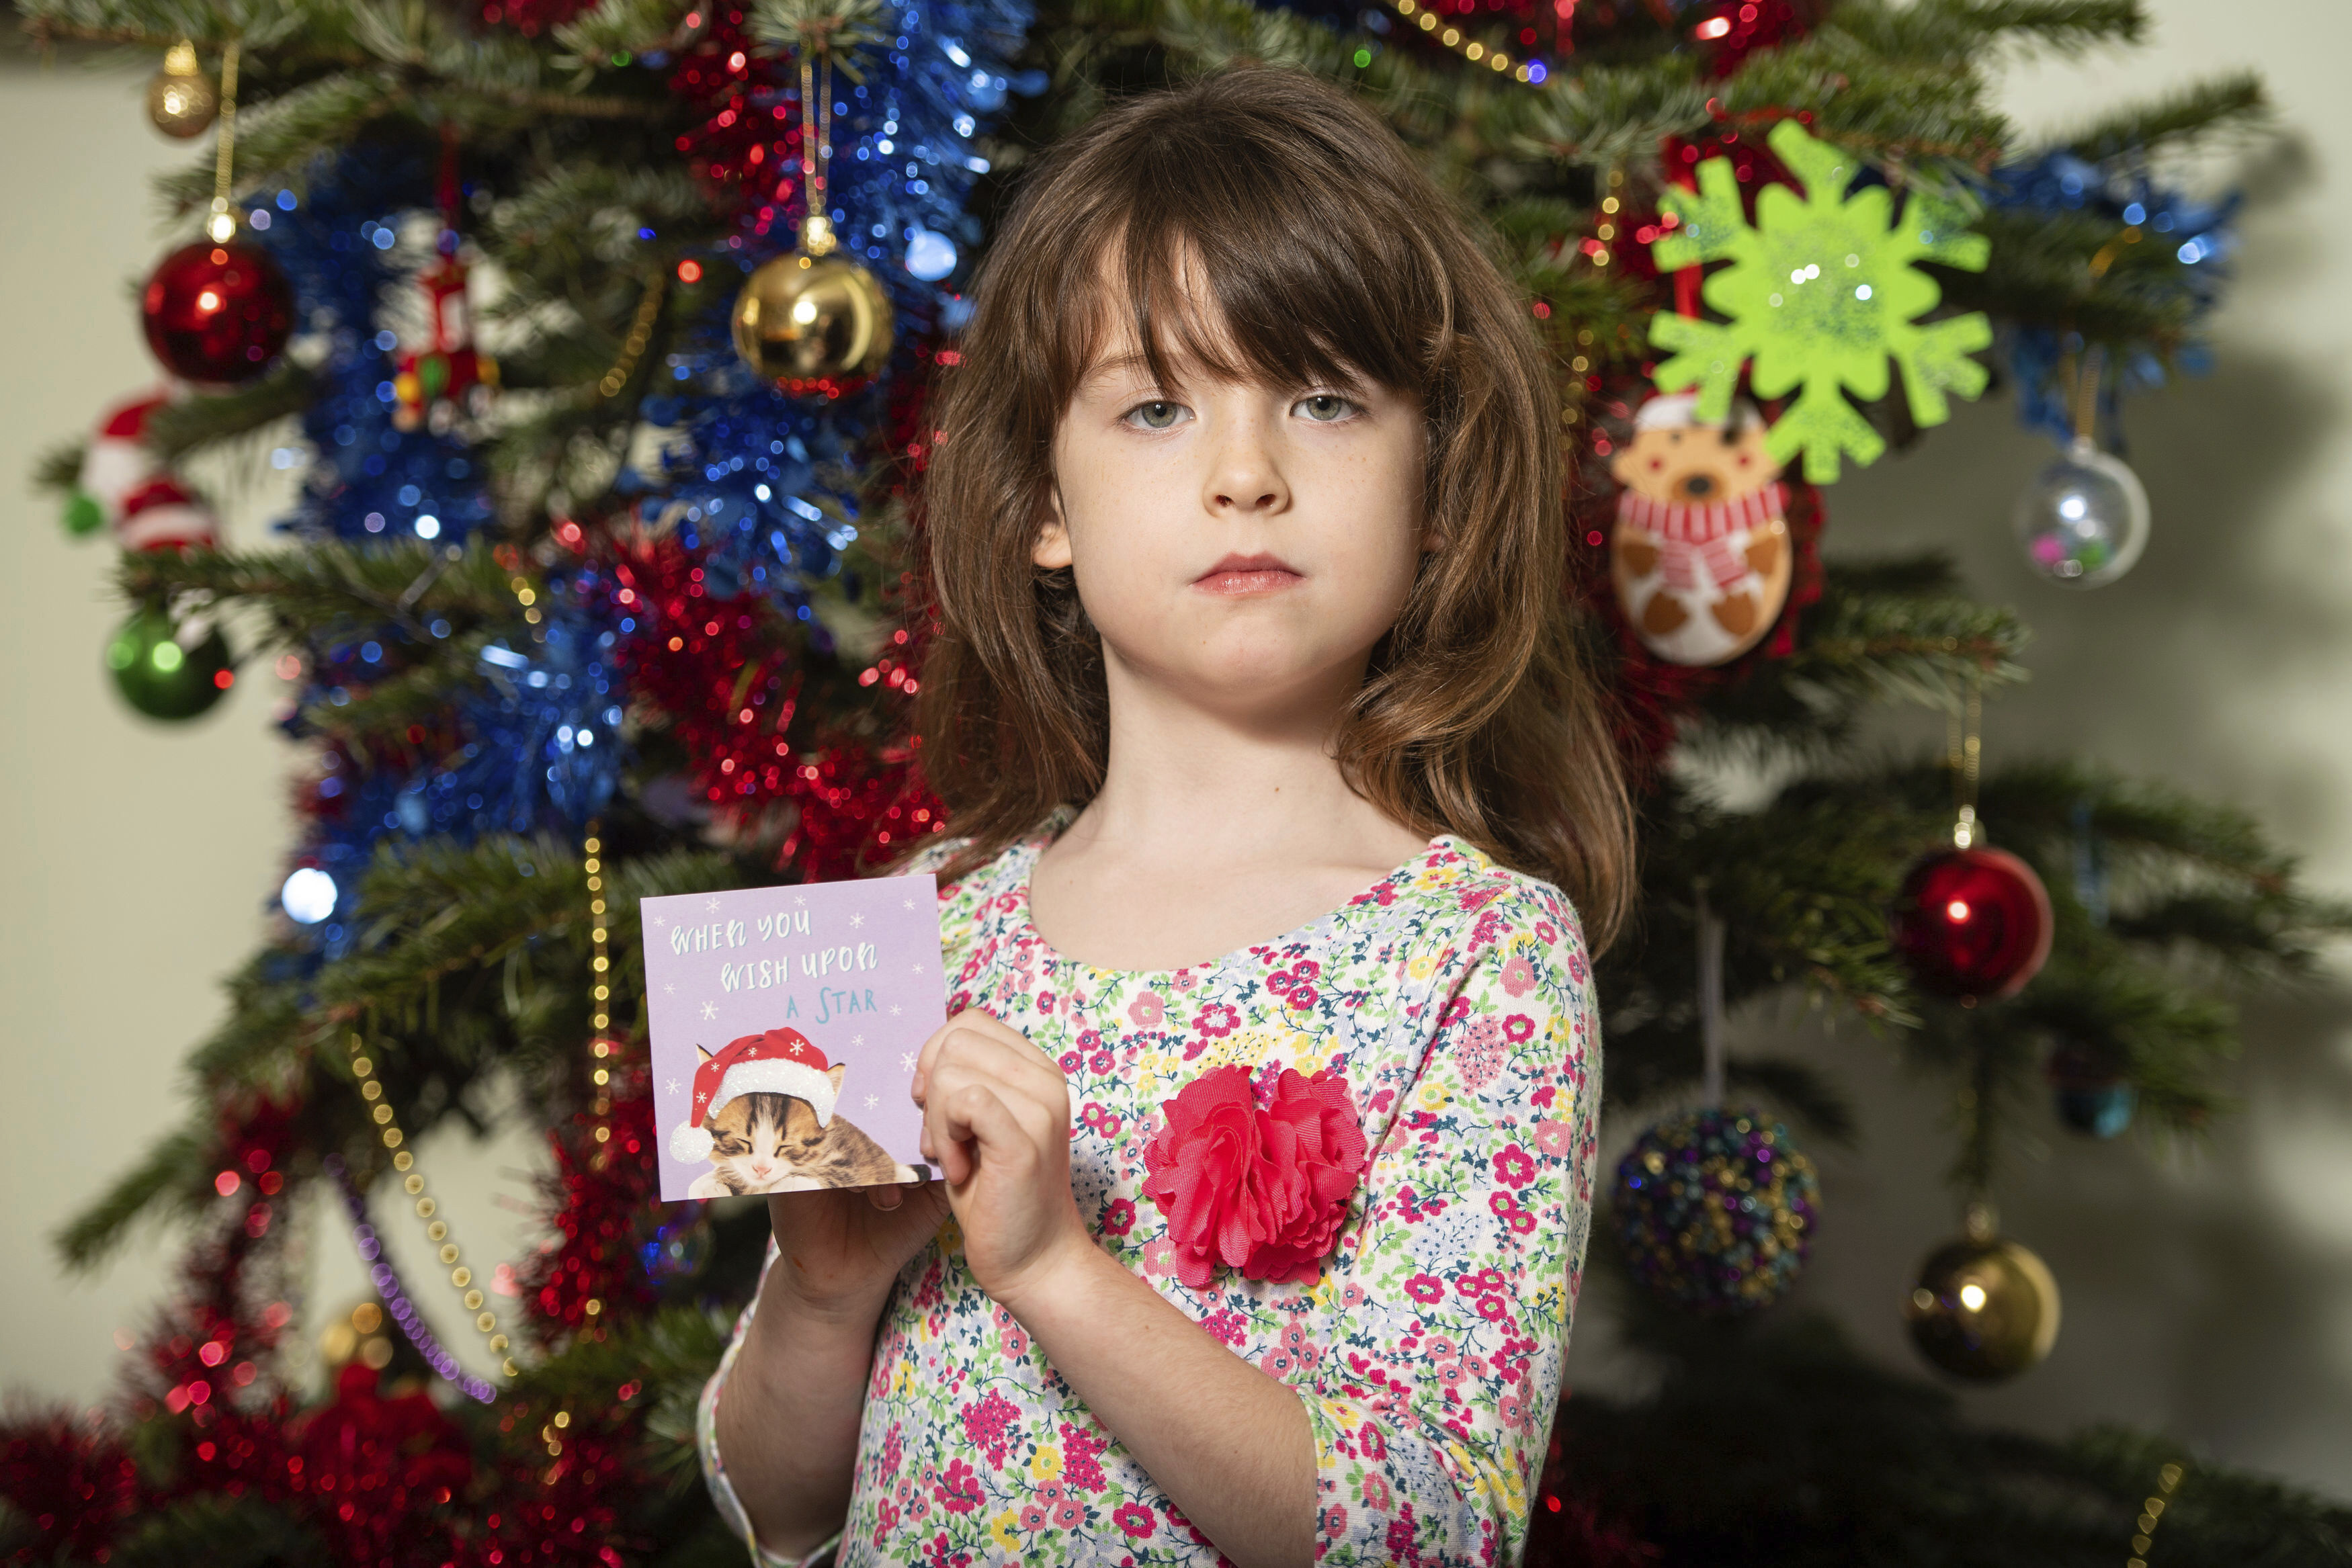 The U.K.-based grocery chain Tesco has halted production at a factory in China after a British newspaper said it used forced labor to produce charity Christmas cards